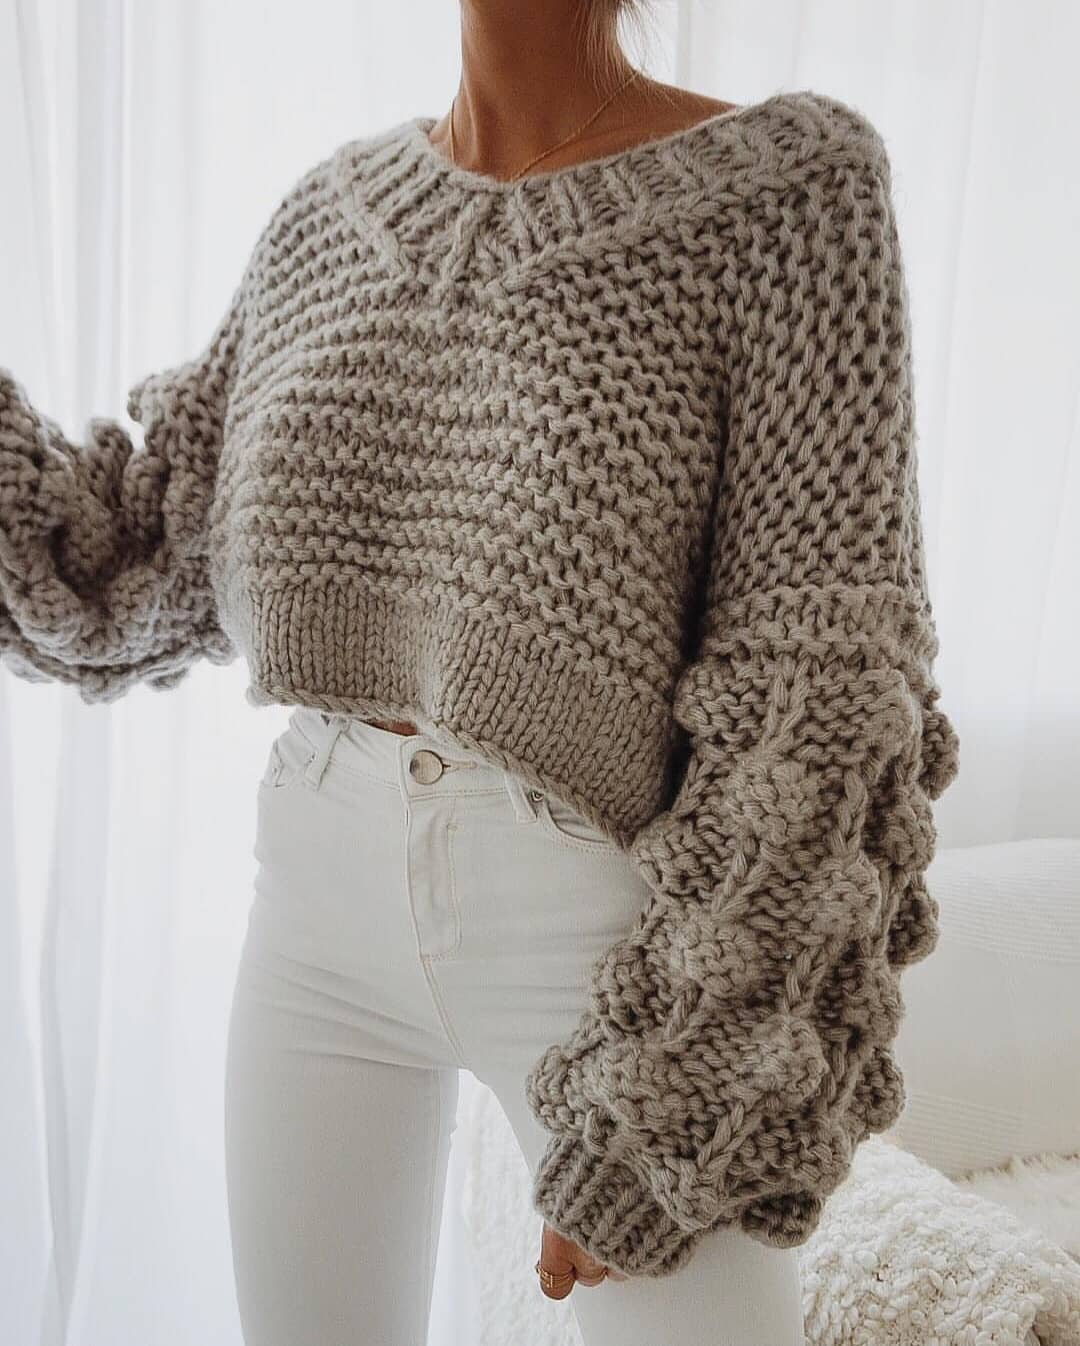 Cream-Grey Bulky Crop Sweater And White Skinny Jeans For Fall 2020